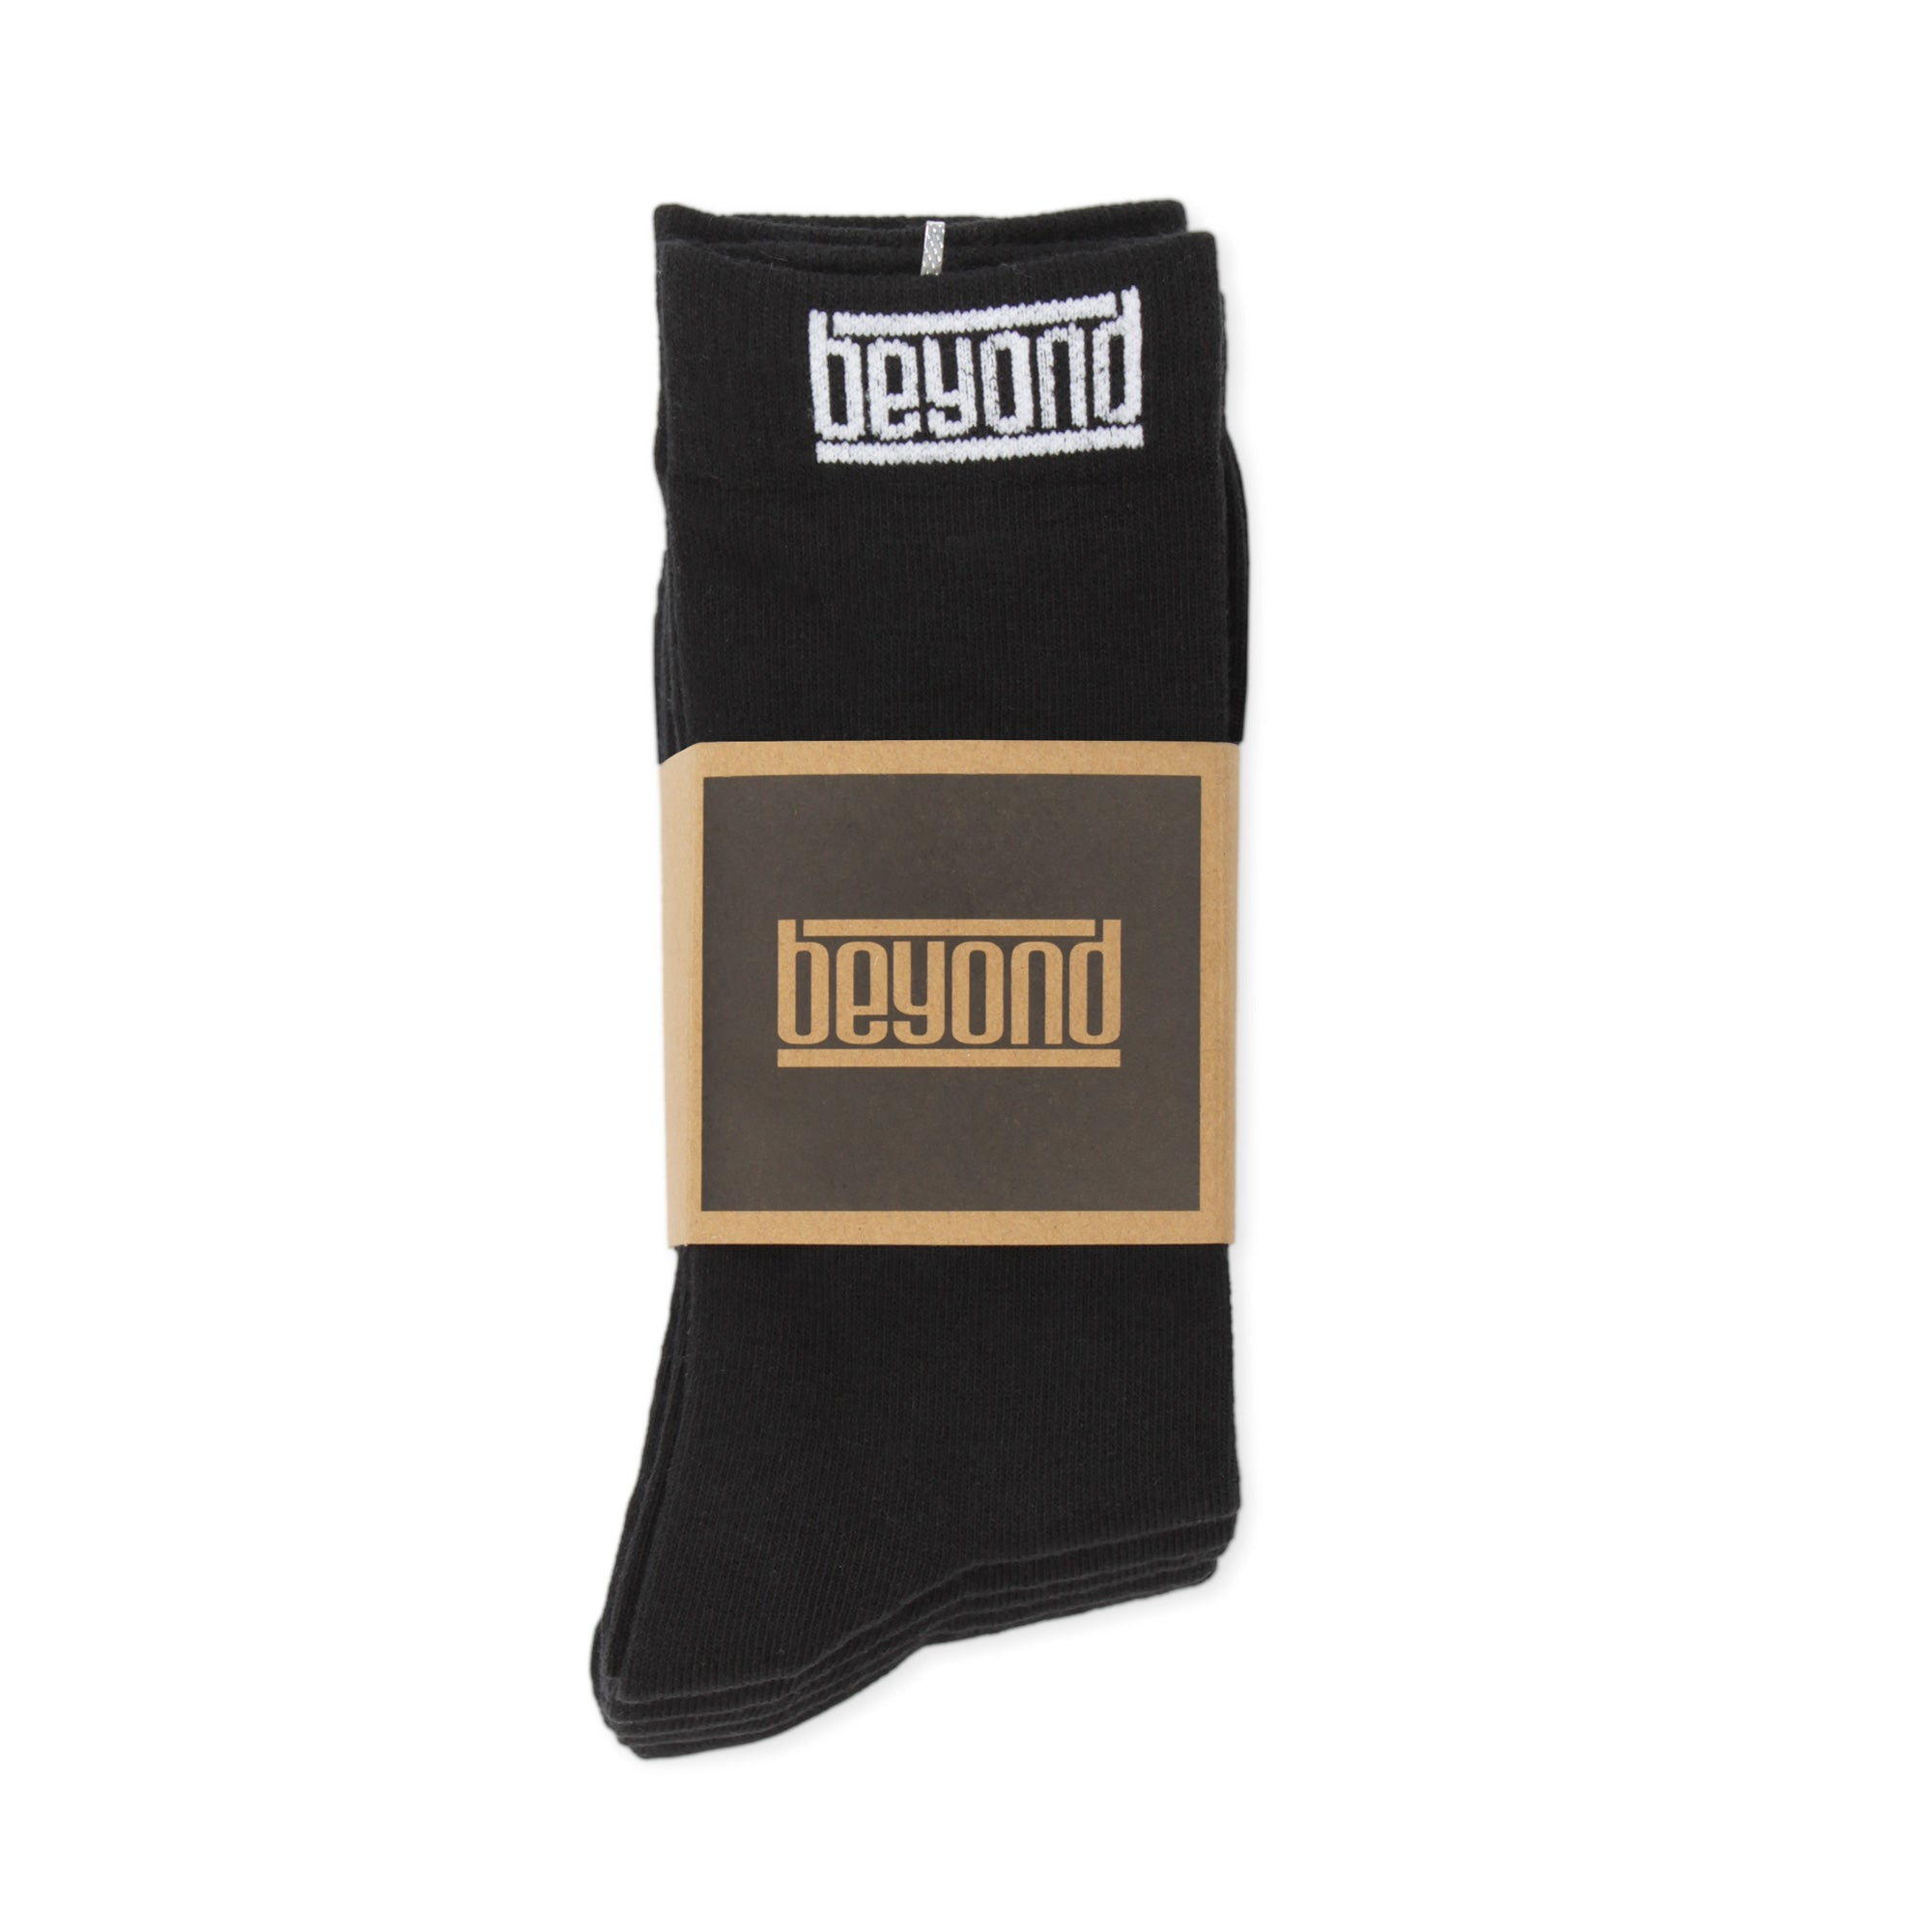 Beyond Crew Socks Product Photo #2